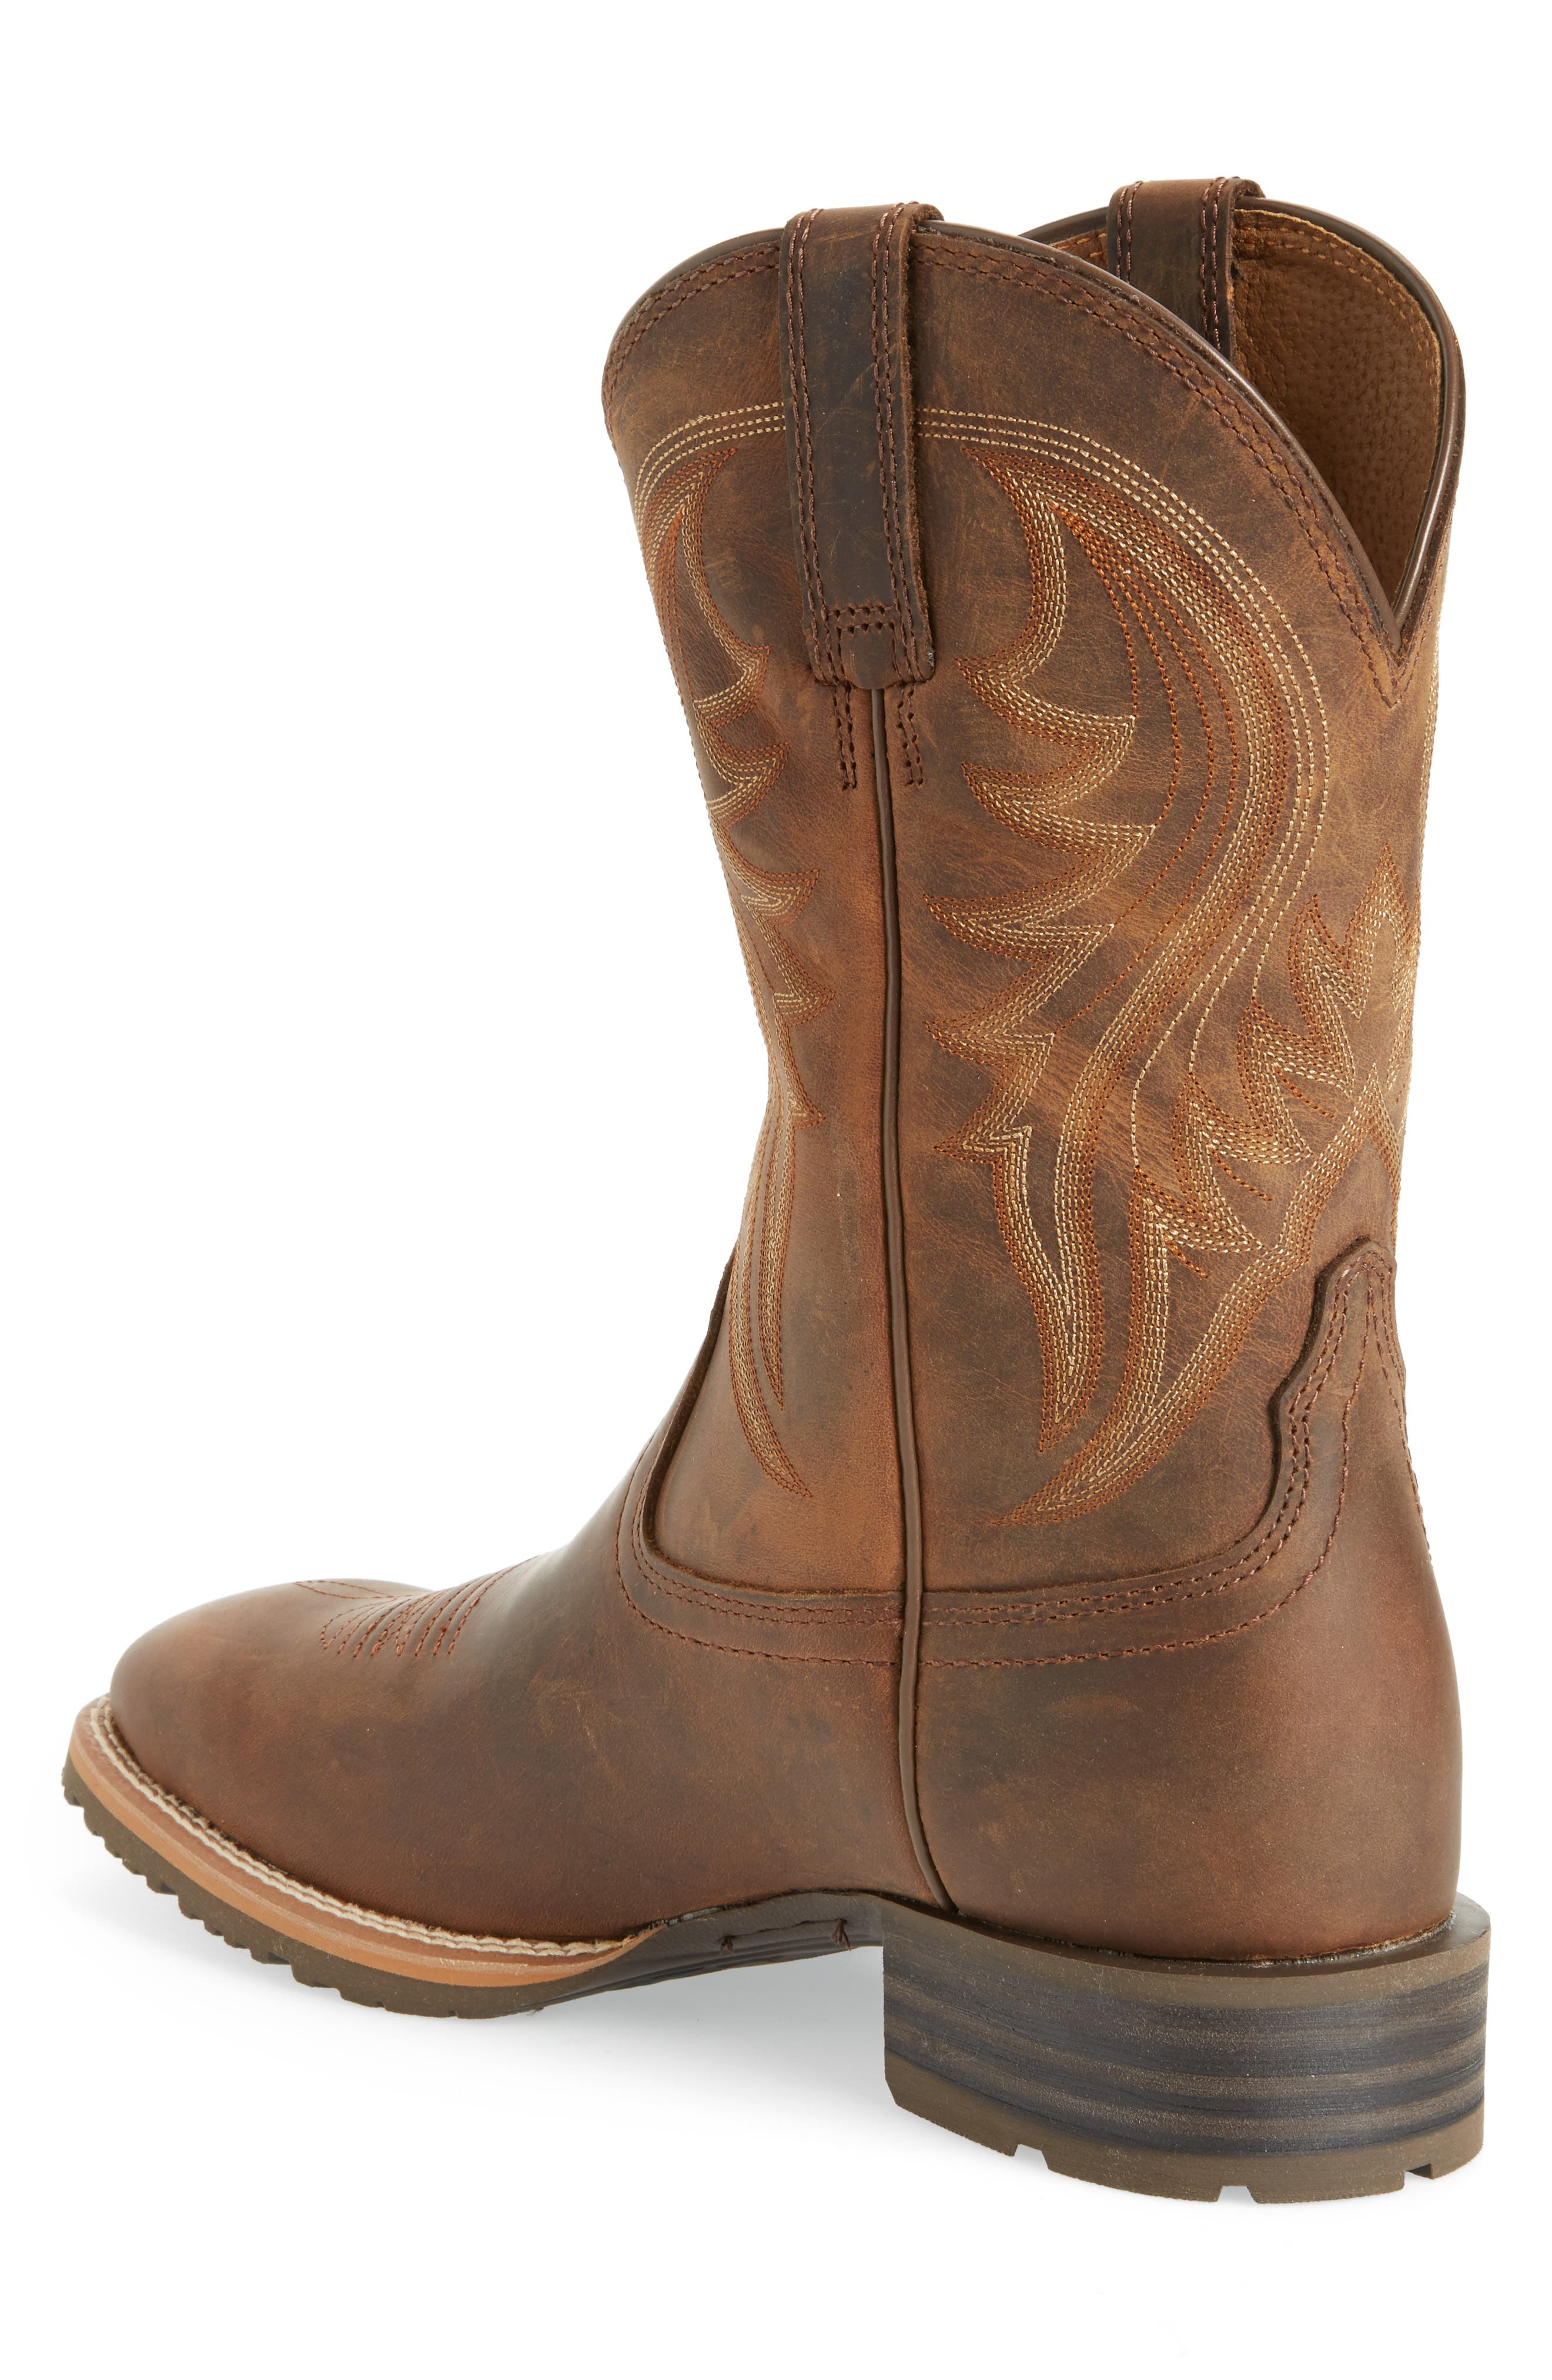 Hybrid Rancher Cowboy Boot,                             Alternate thumbnail 2, color,                             Distressed Brown Leather